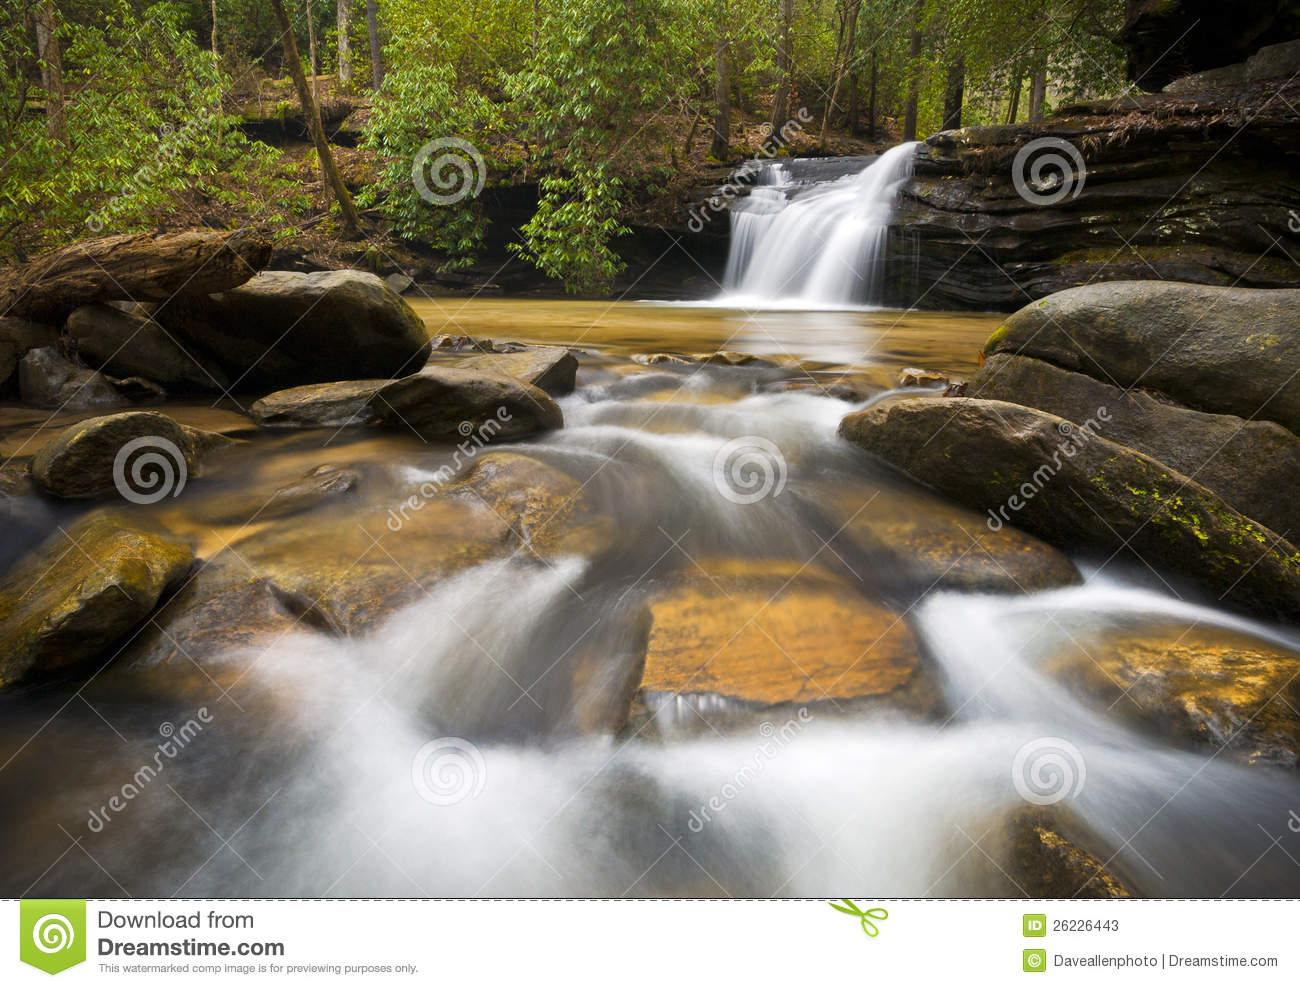 Download SC Waterfall Relaxing Landscape Blue Ridge Nature Stock Image - Image of forest, outdoors: 26226443